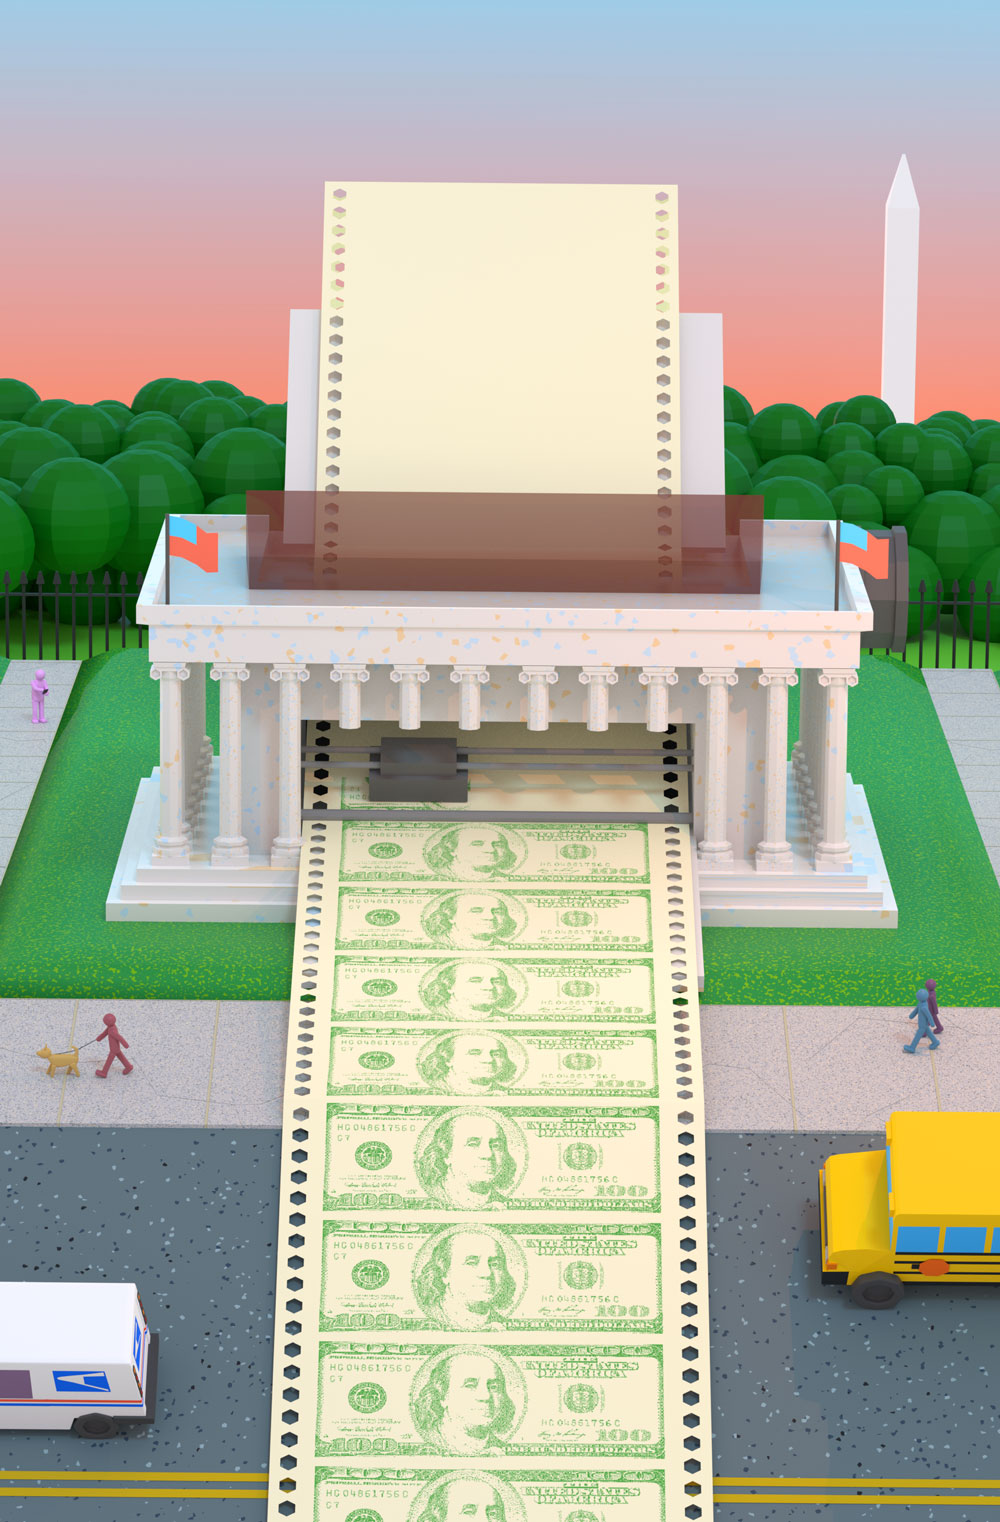 The U.S. treasury rendered as a giant printer printing off an endless strip of hundred dollar bills.